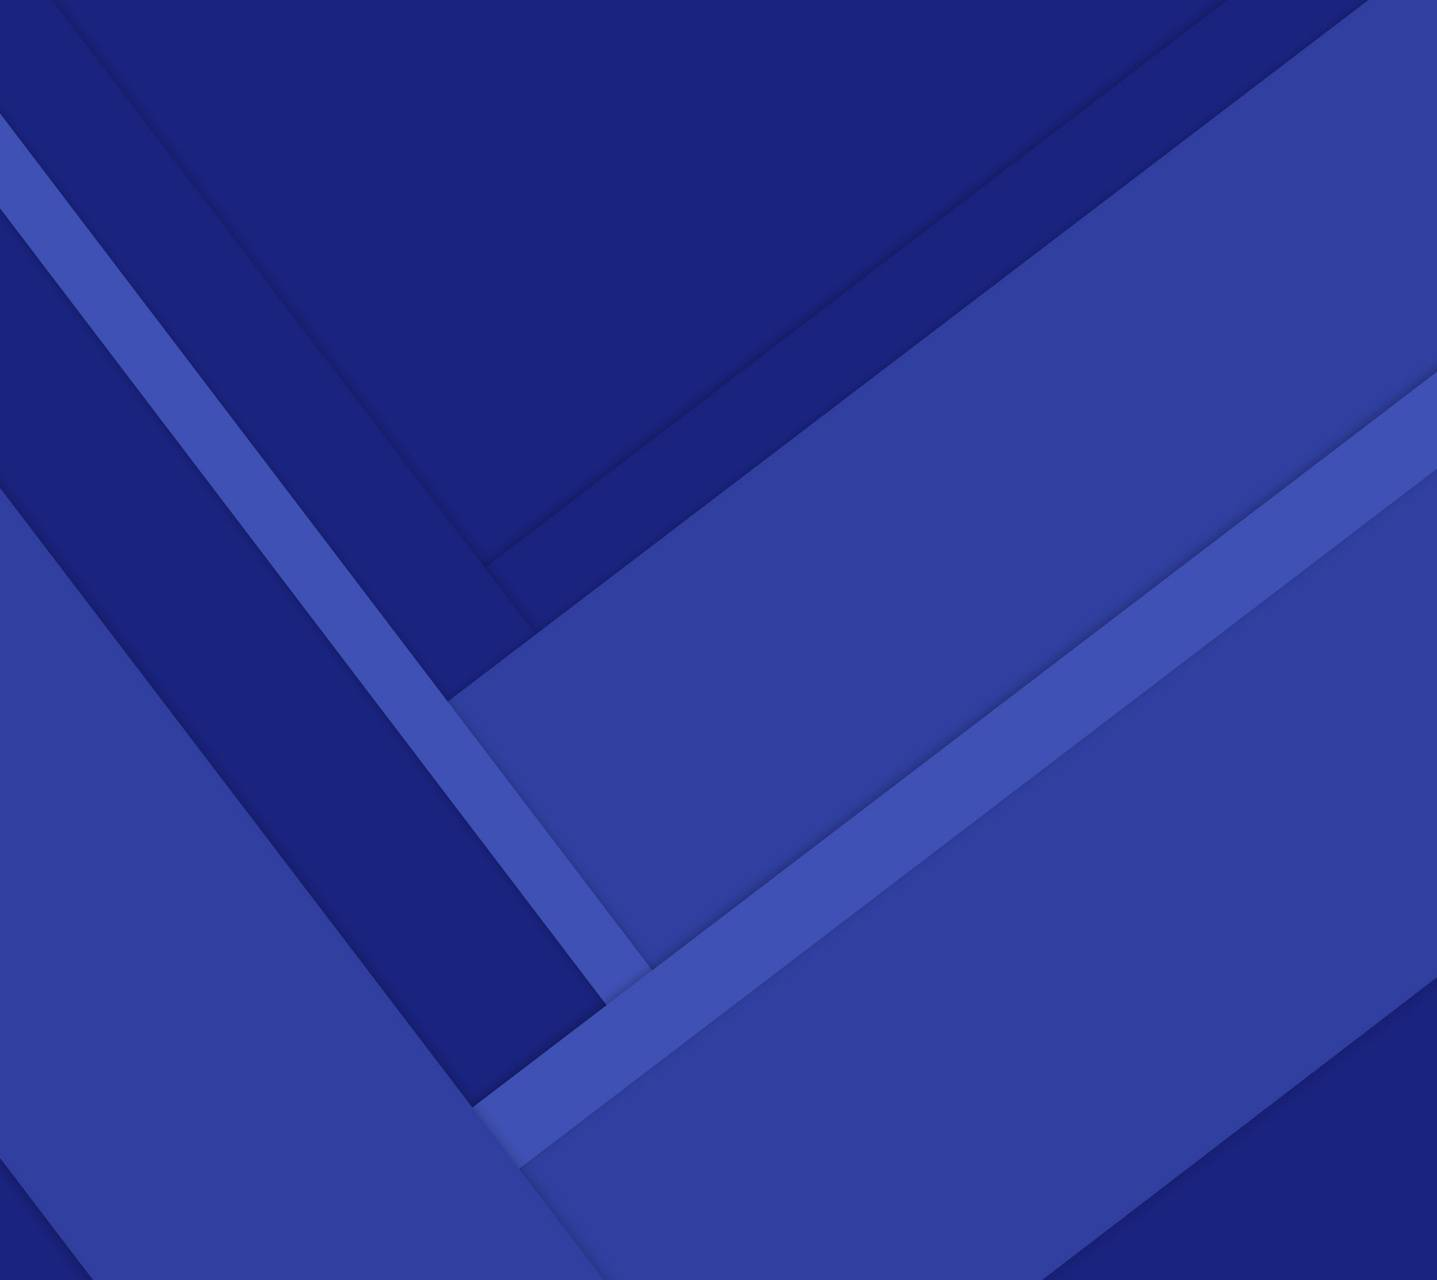 Material Angles Blue